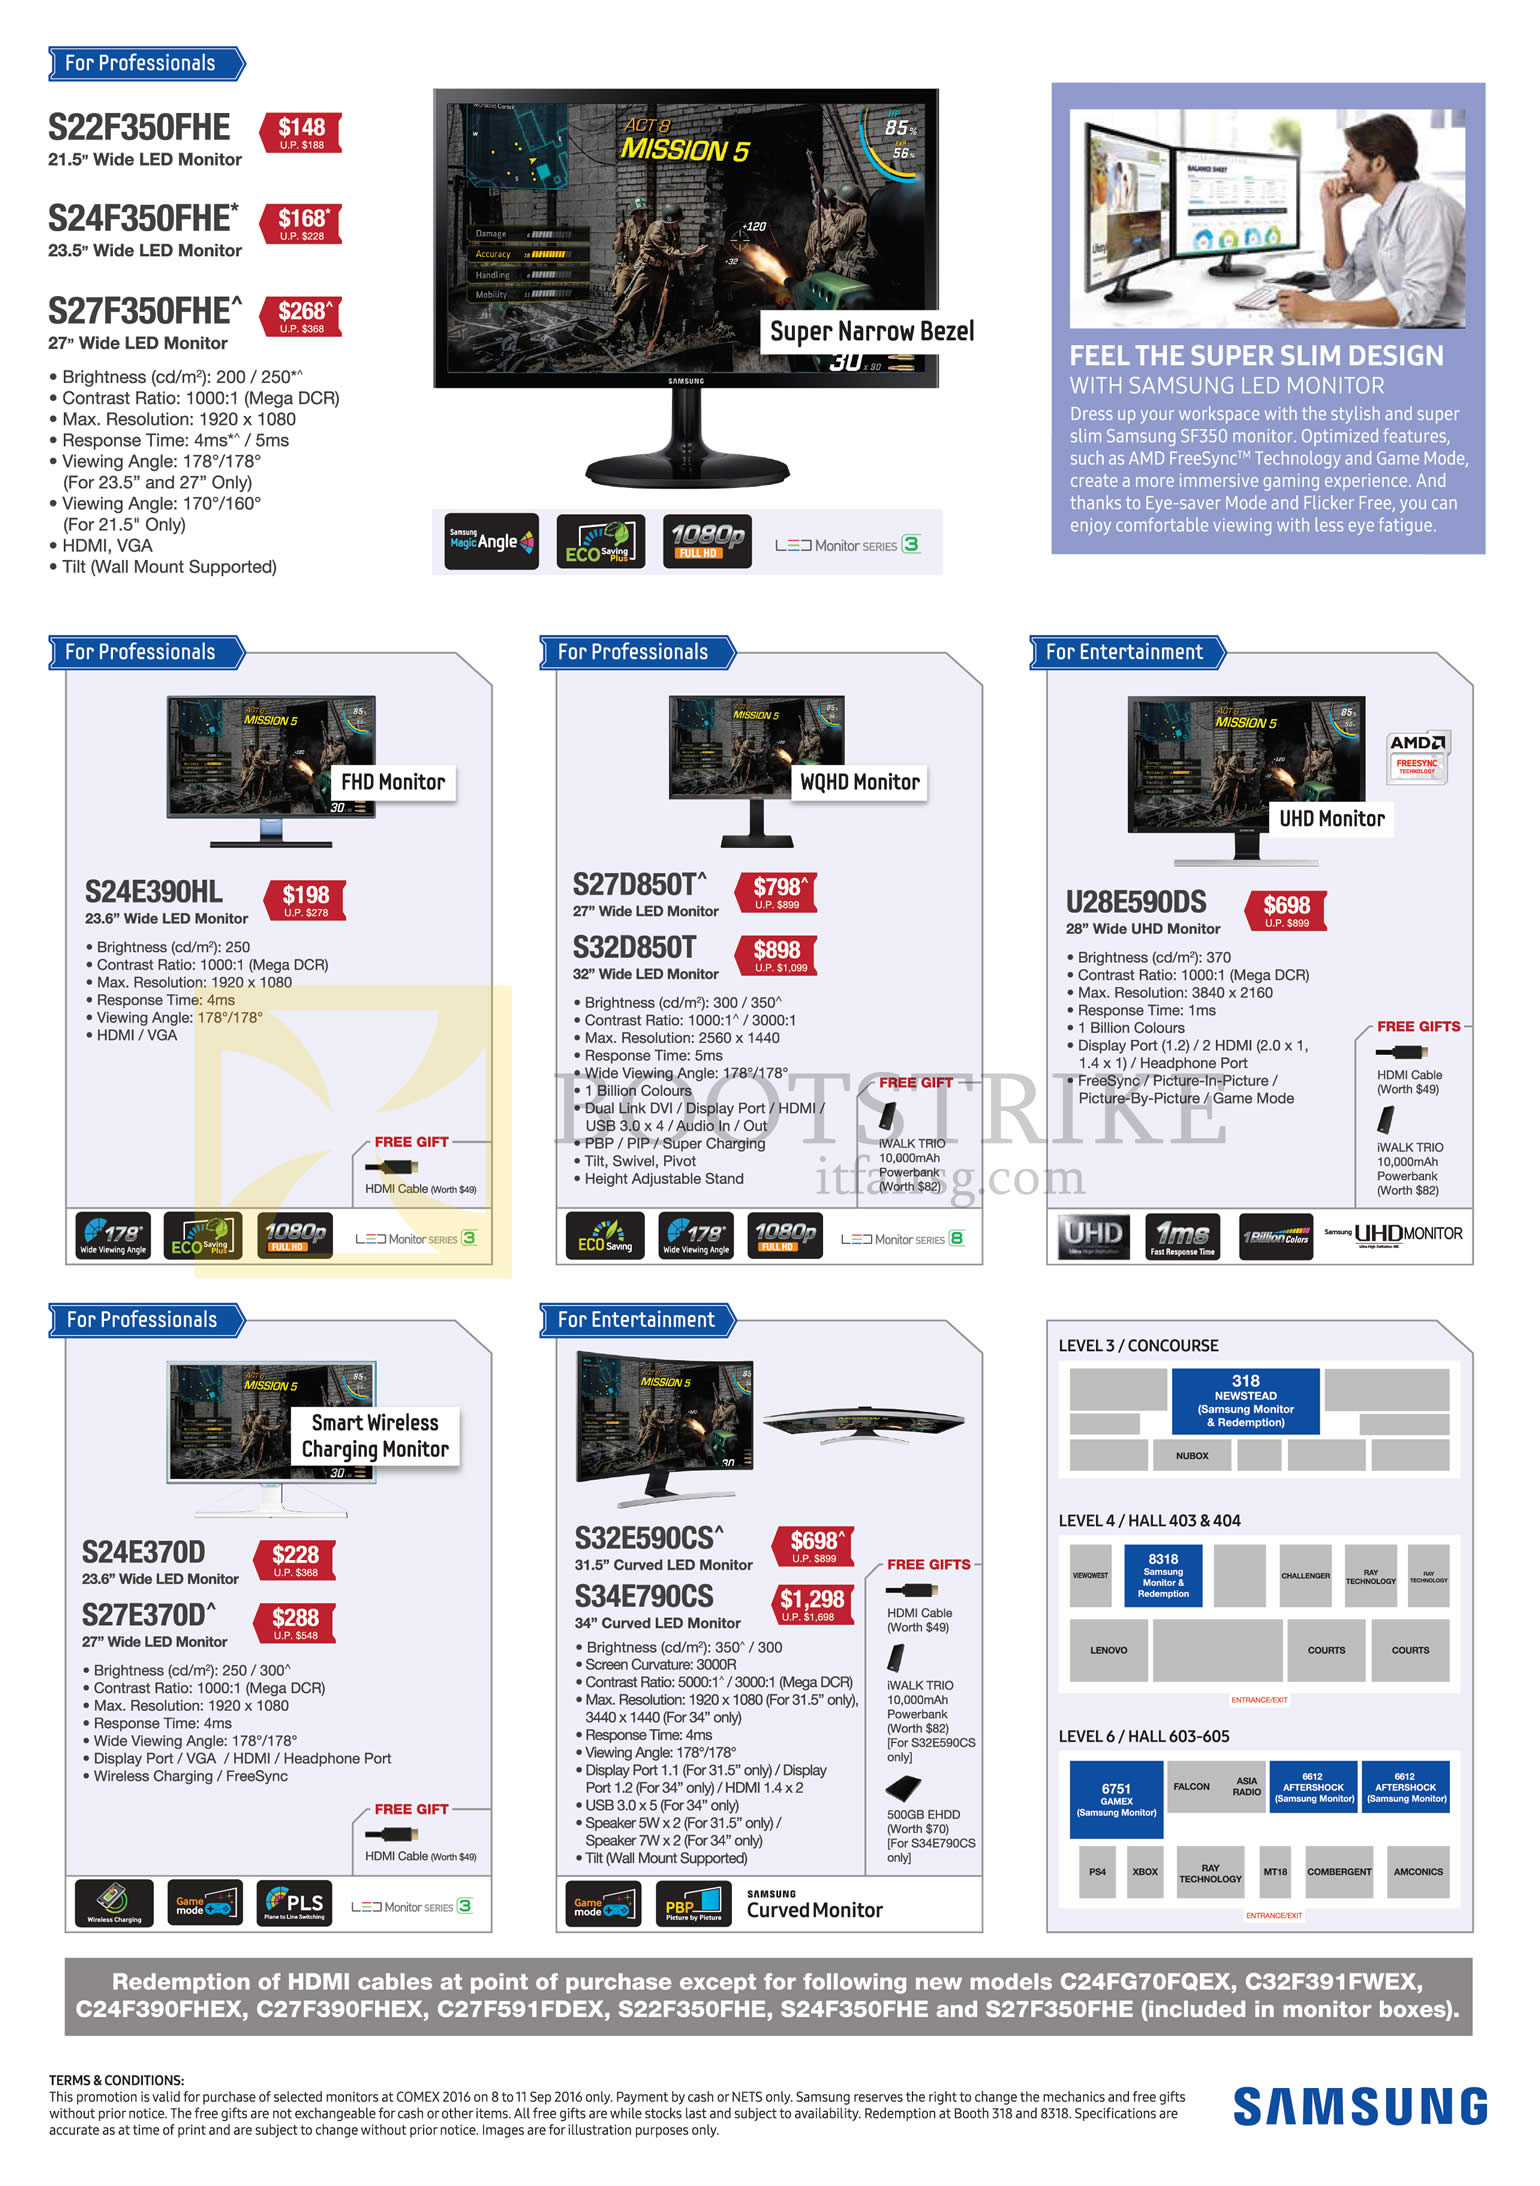 COMEX 2016 price list image brochure of Samsung Monitors LED S22F350FHE, S24F350FHE, S27F350FHE, S24E390HL, S27D850T, S32D850T, U28E590DS, S24E370D, S27E370D, S32E590CS, S34E790CS